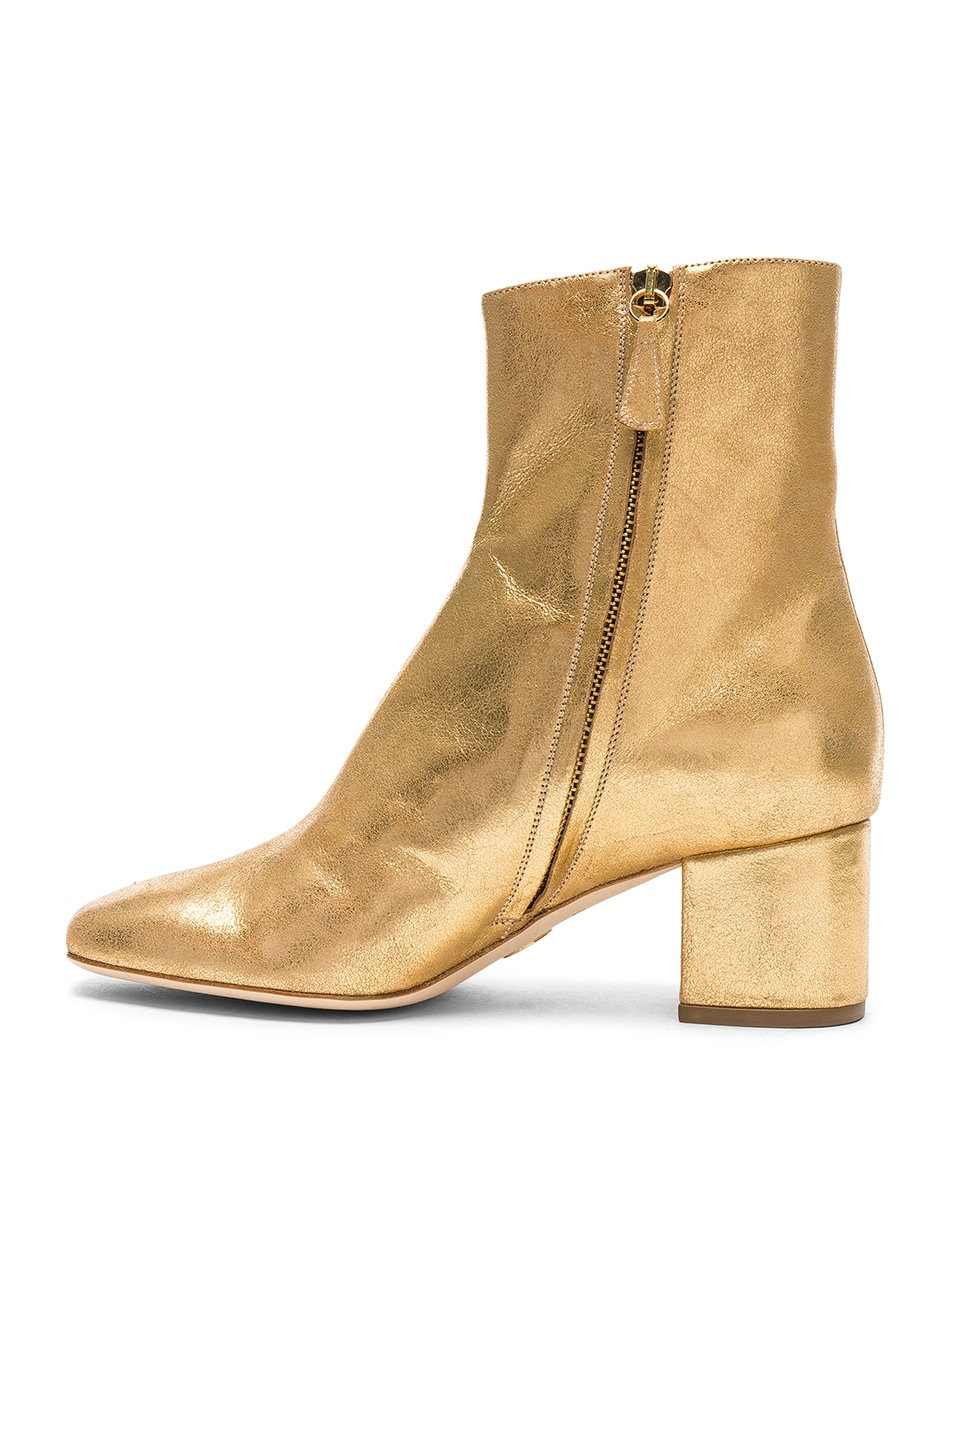 Image 5 of Brother Vellies Leather Kaya Boots in Gold Leather